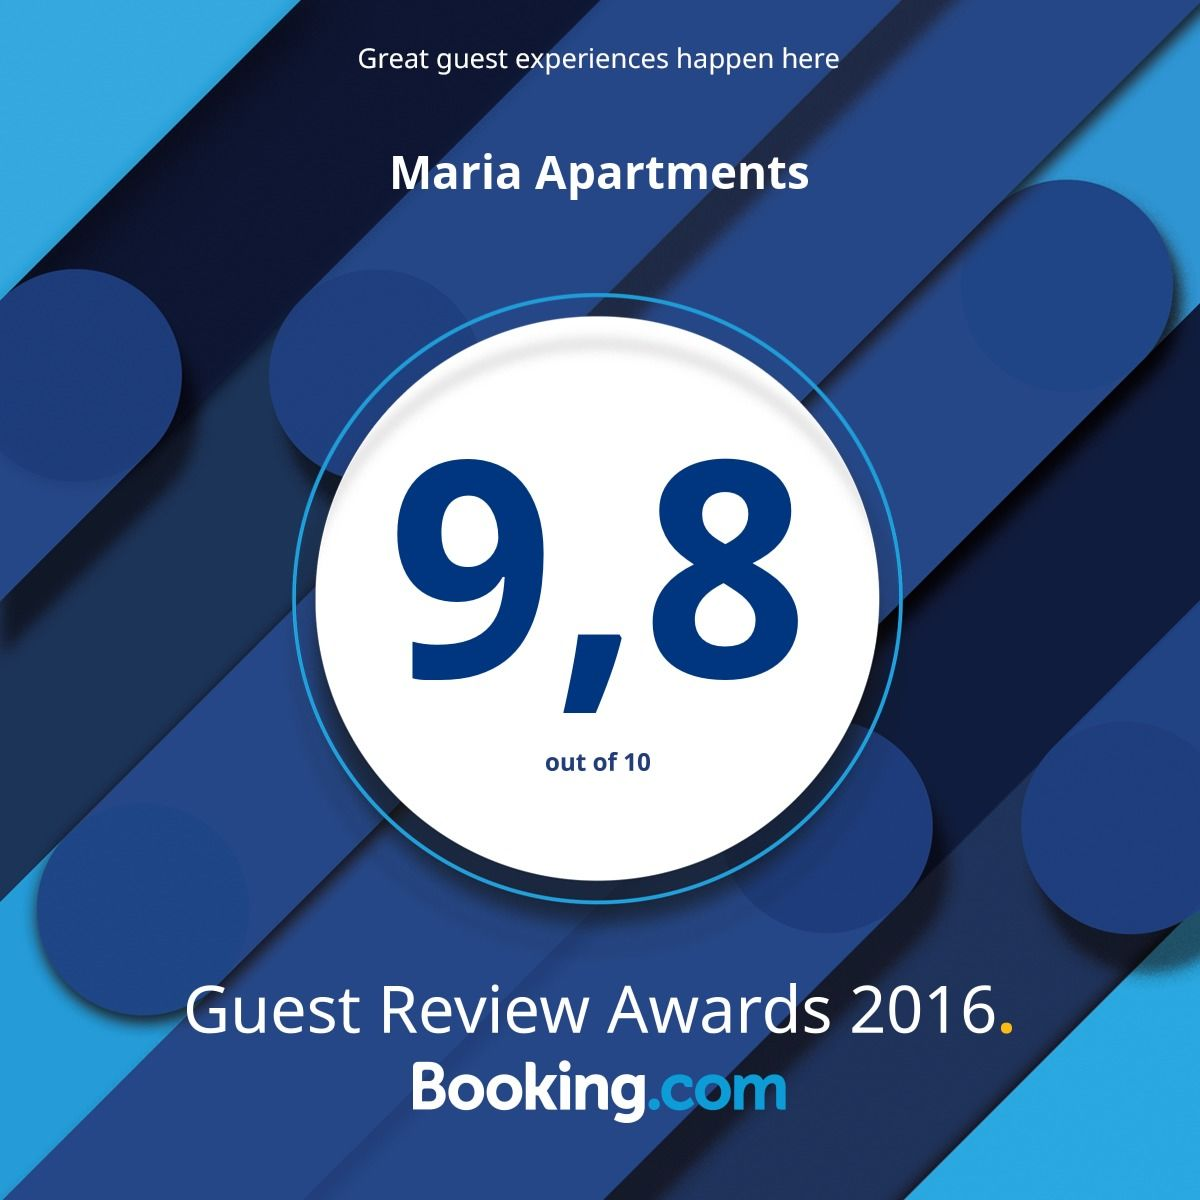 Marias Apartments Booking Score